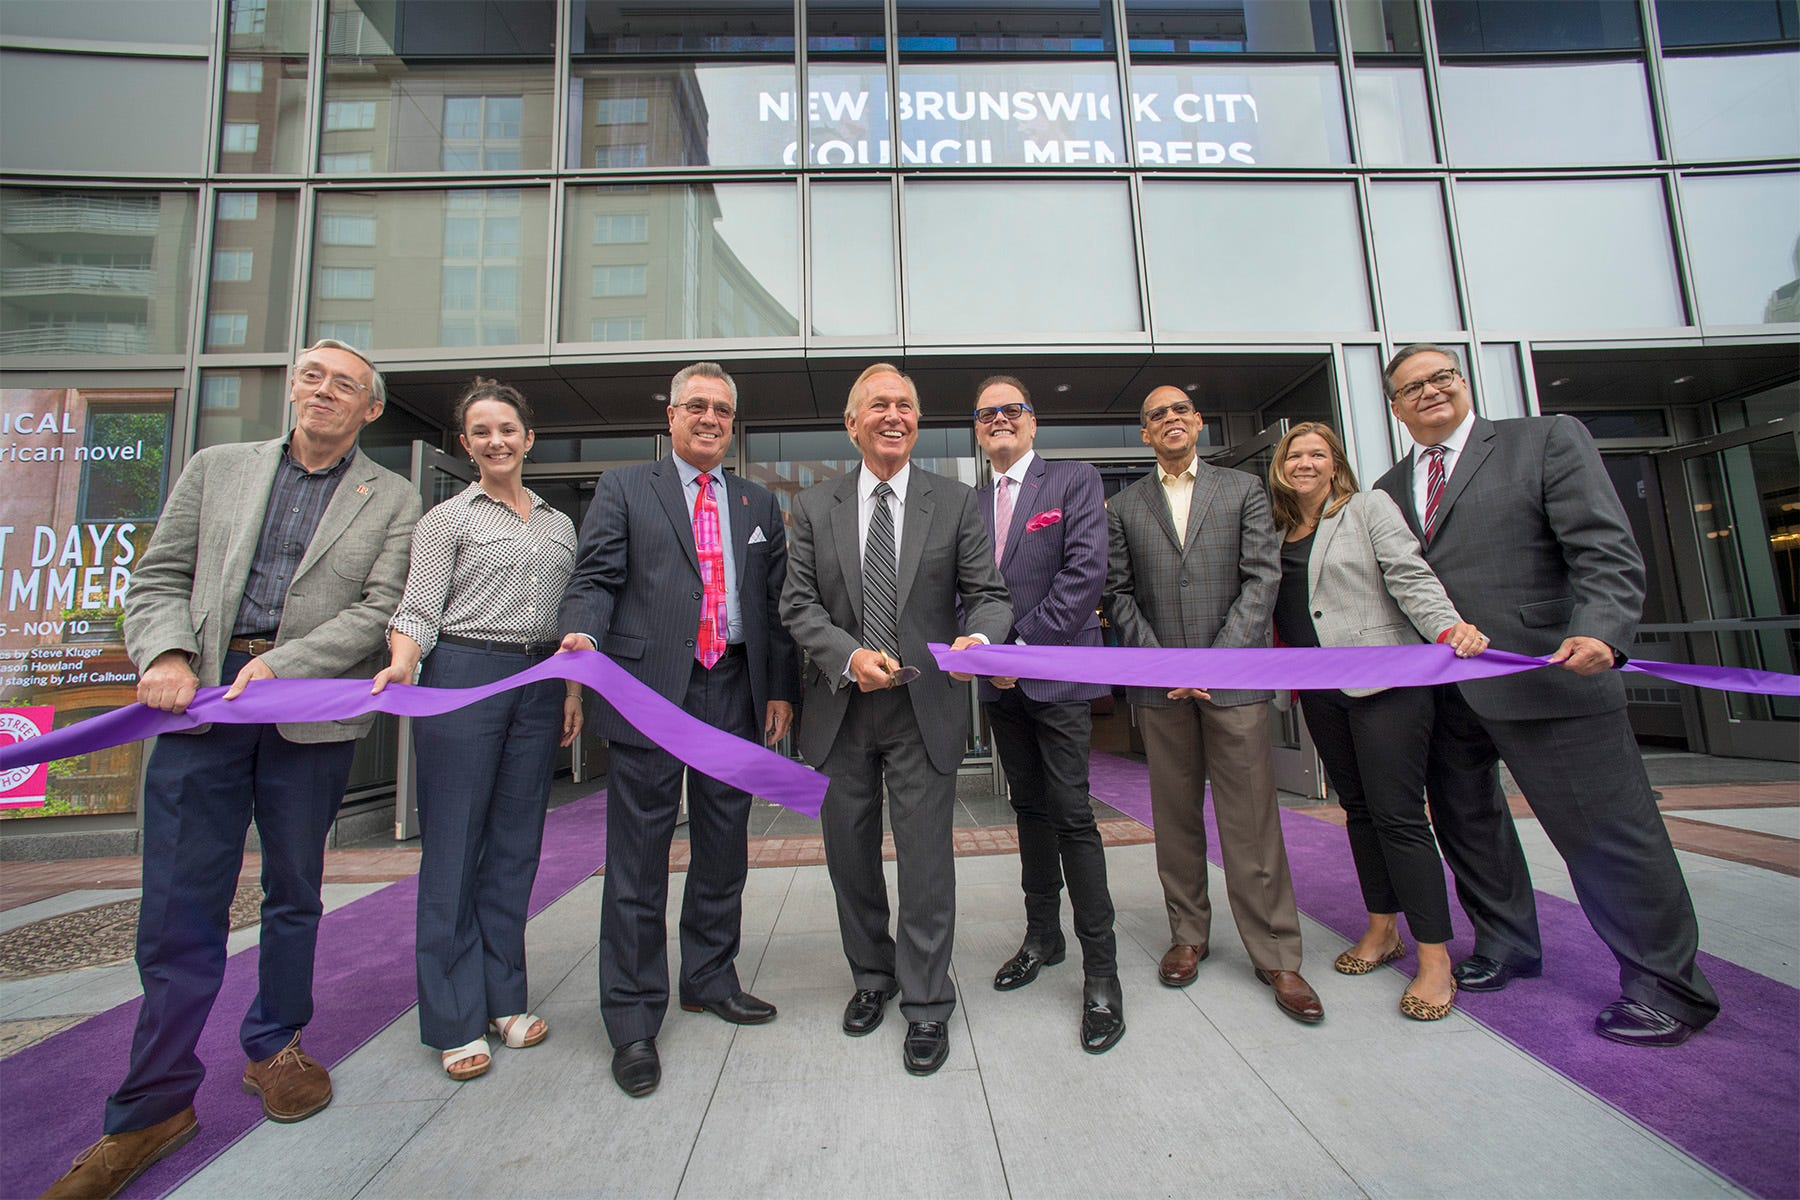 Scenes from the opening of New Brunswick Performing Arts Center